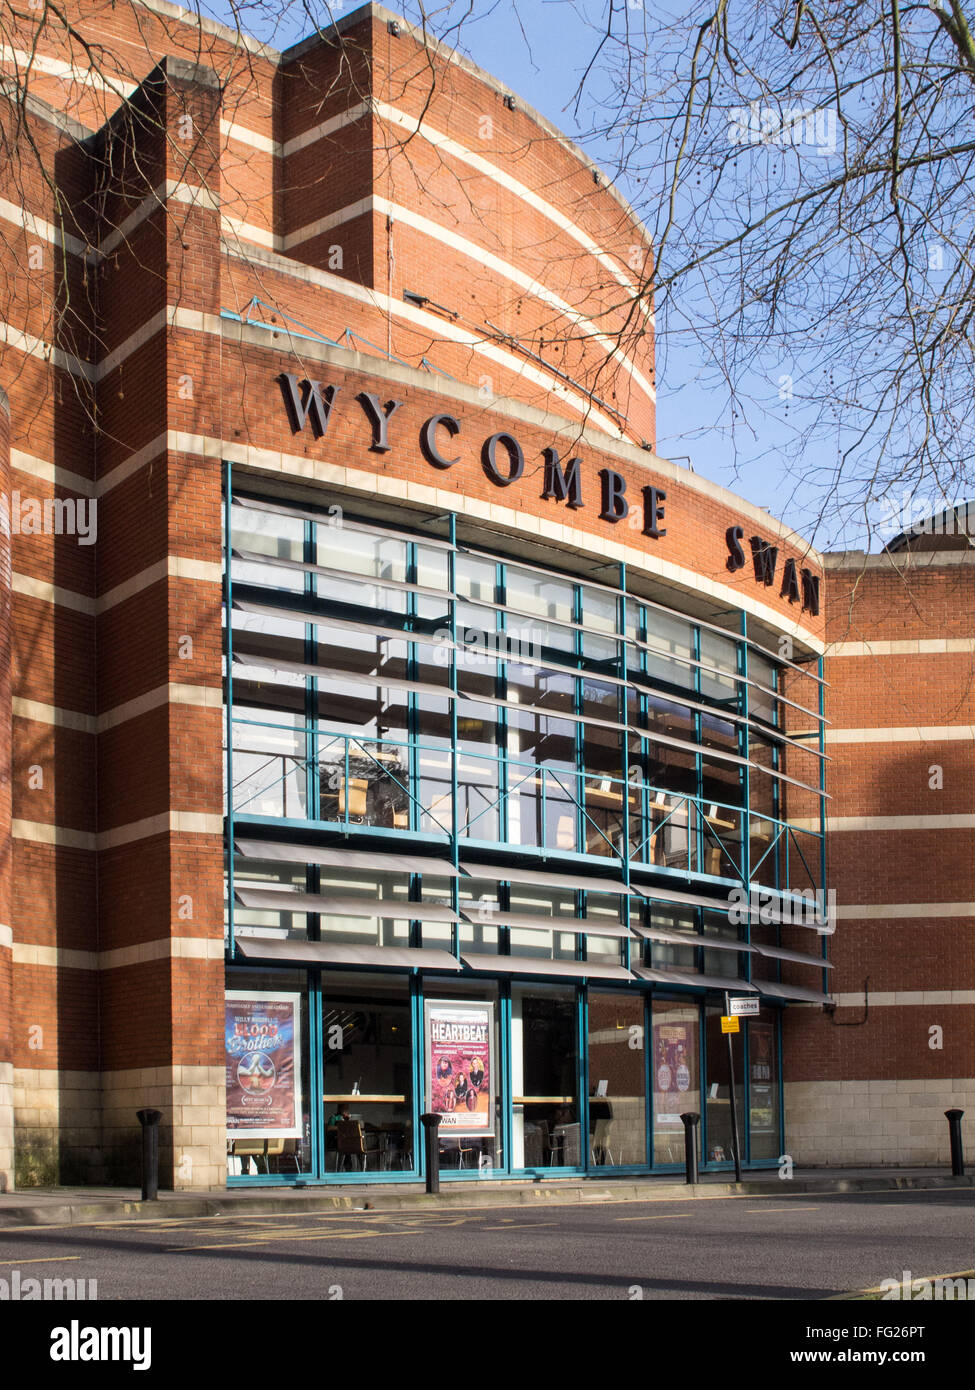 The Wycombe Swan theatre, High Wycombe, Buckinghamshire, UK. Stock Photo